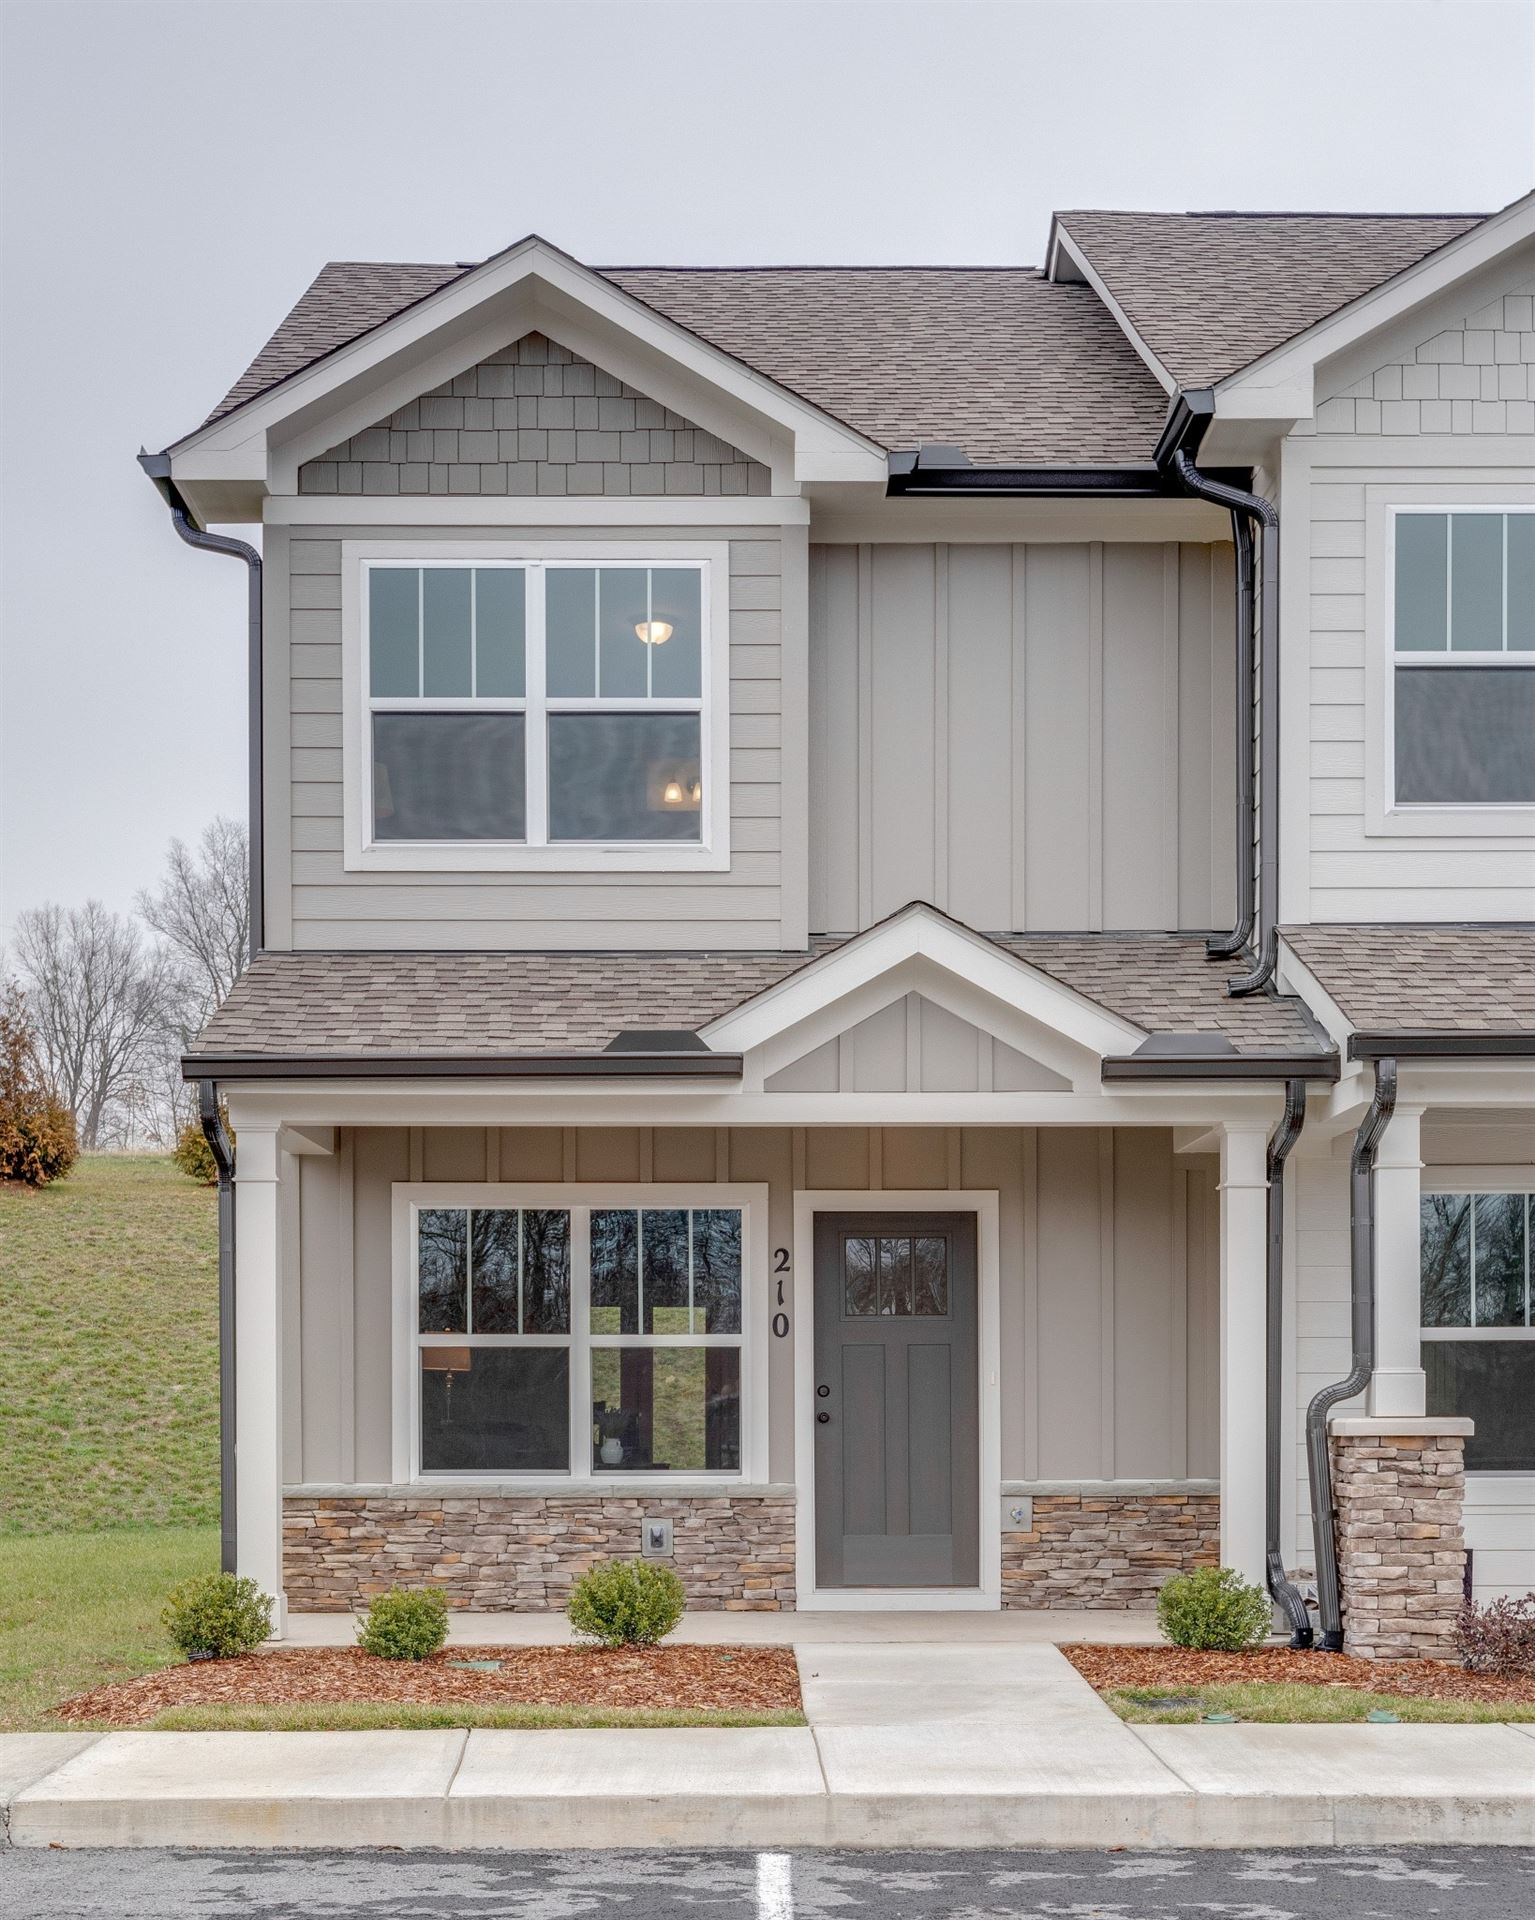 403 Bell Forge Ct, White Bluff, TN 37187 - MLS#: 2160334